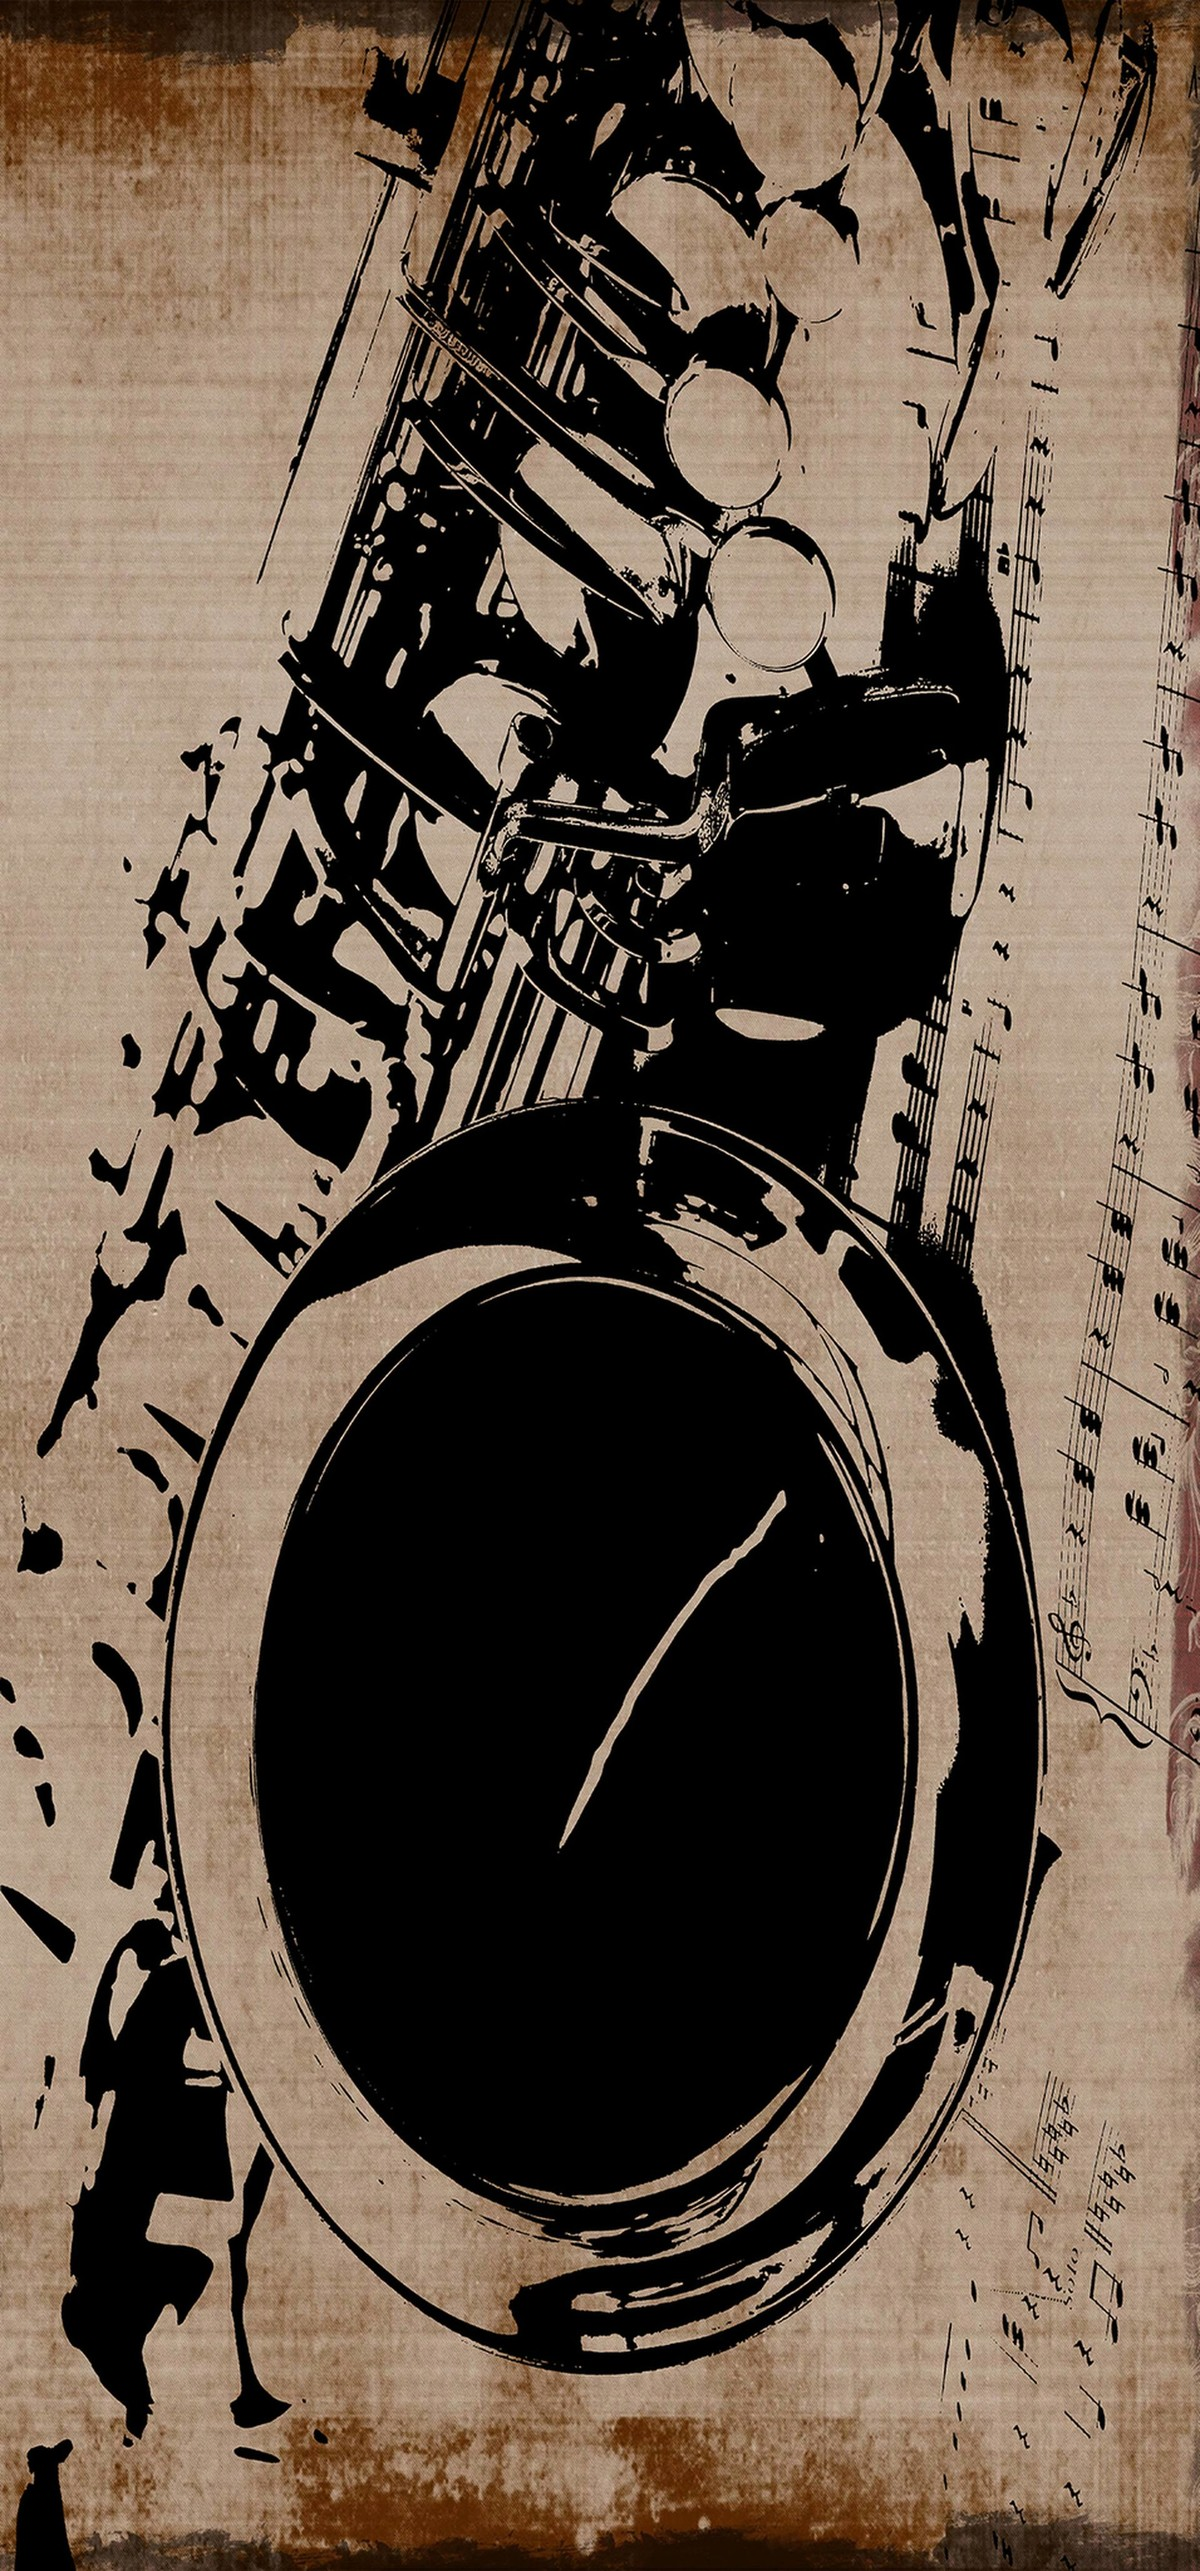 Saxophone - I - Limited Edition of 5 by Mayurakshi, Digital Painting, Mixed Media on Canvas, Licorice color